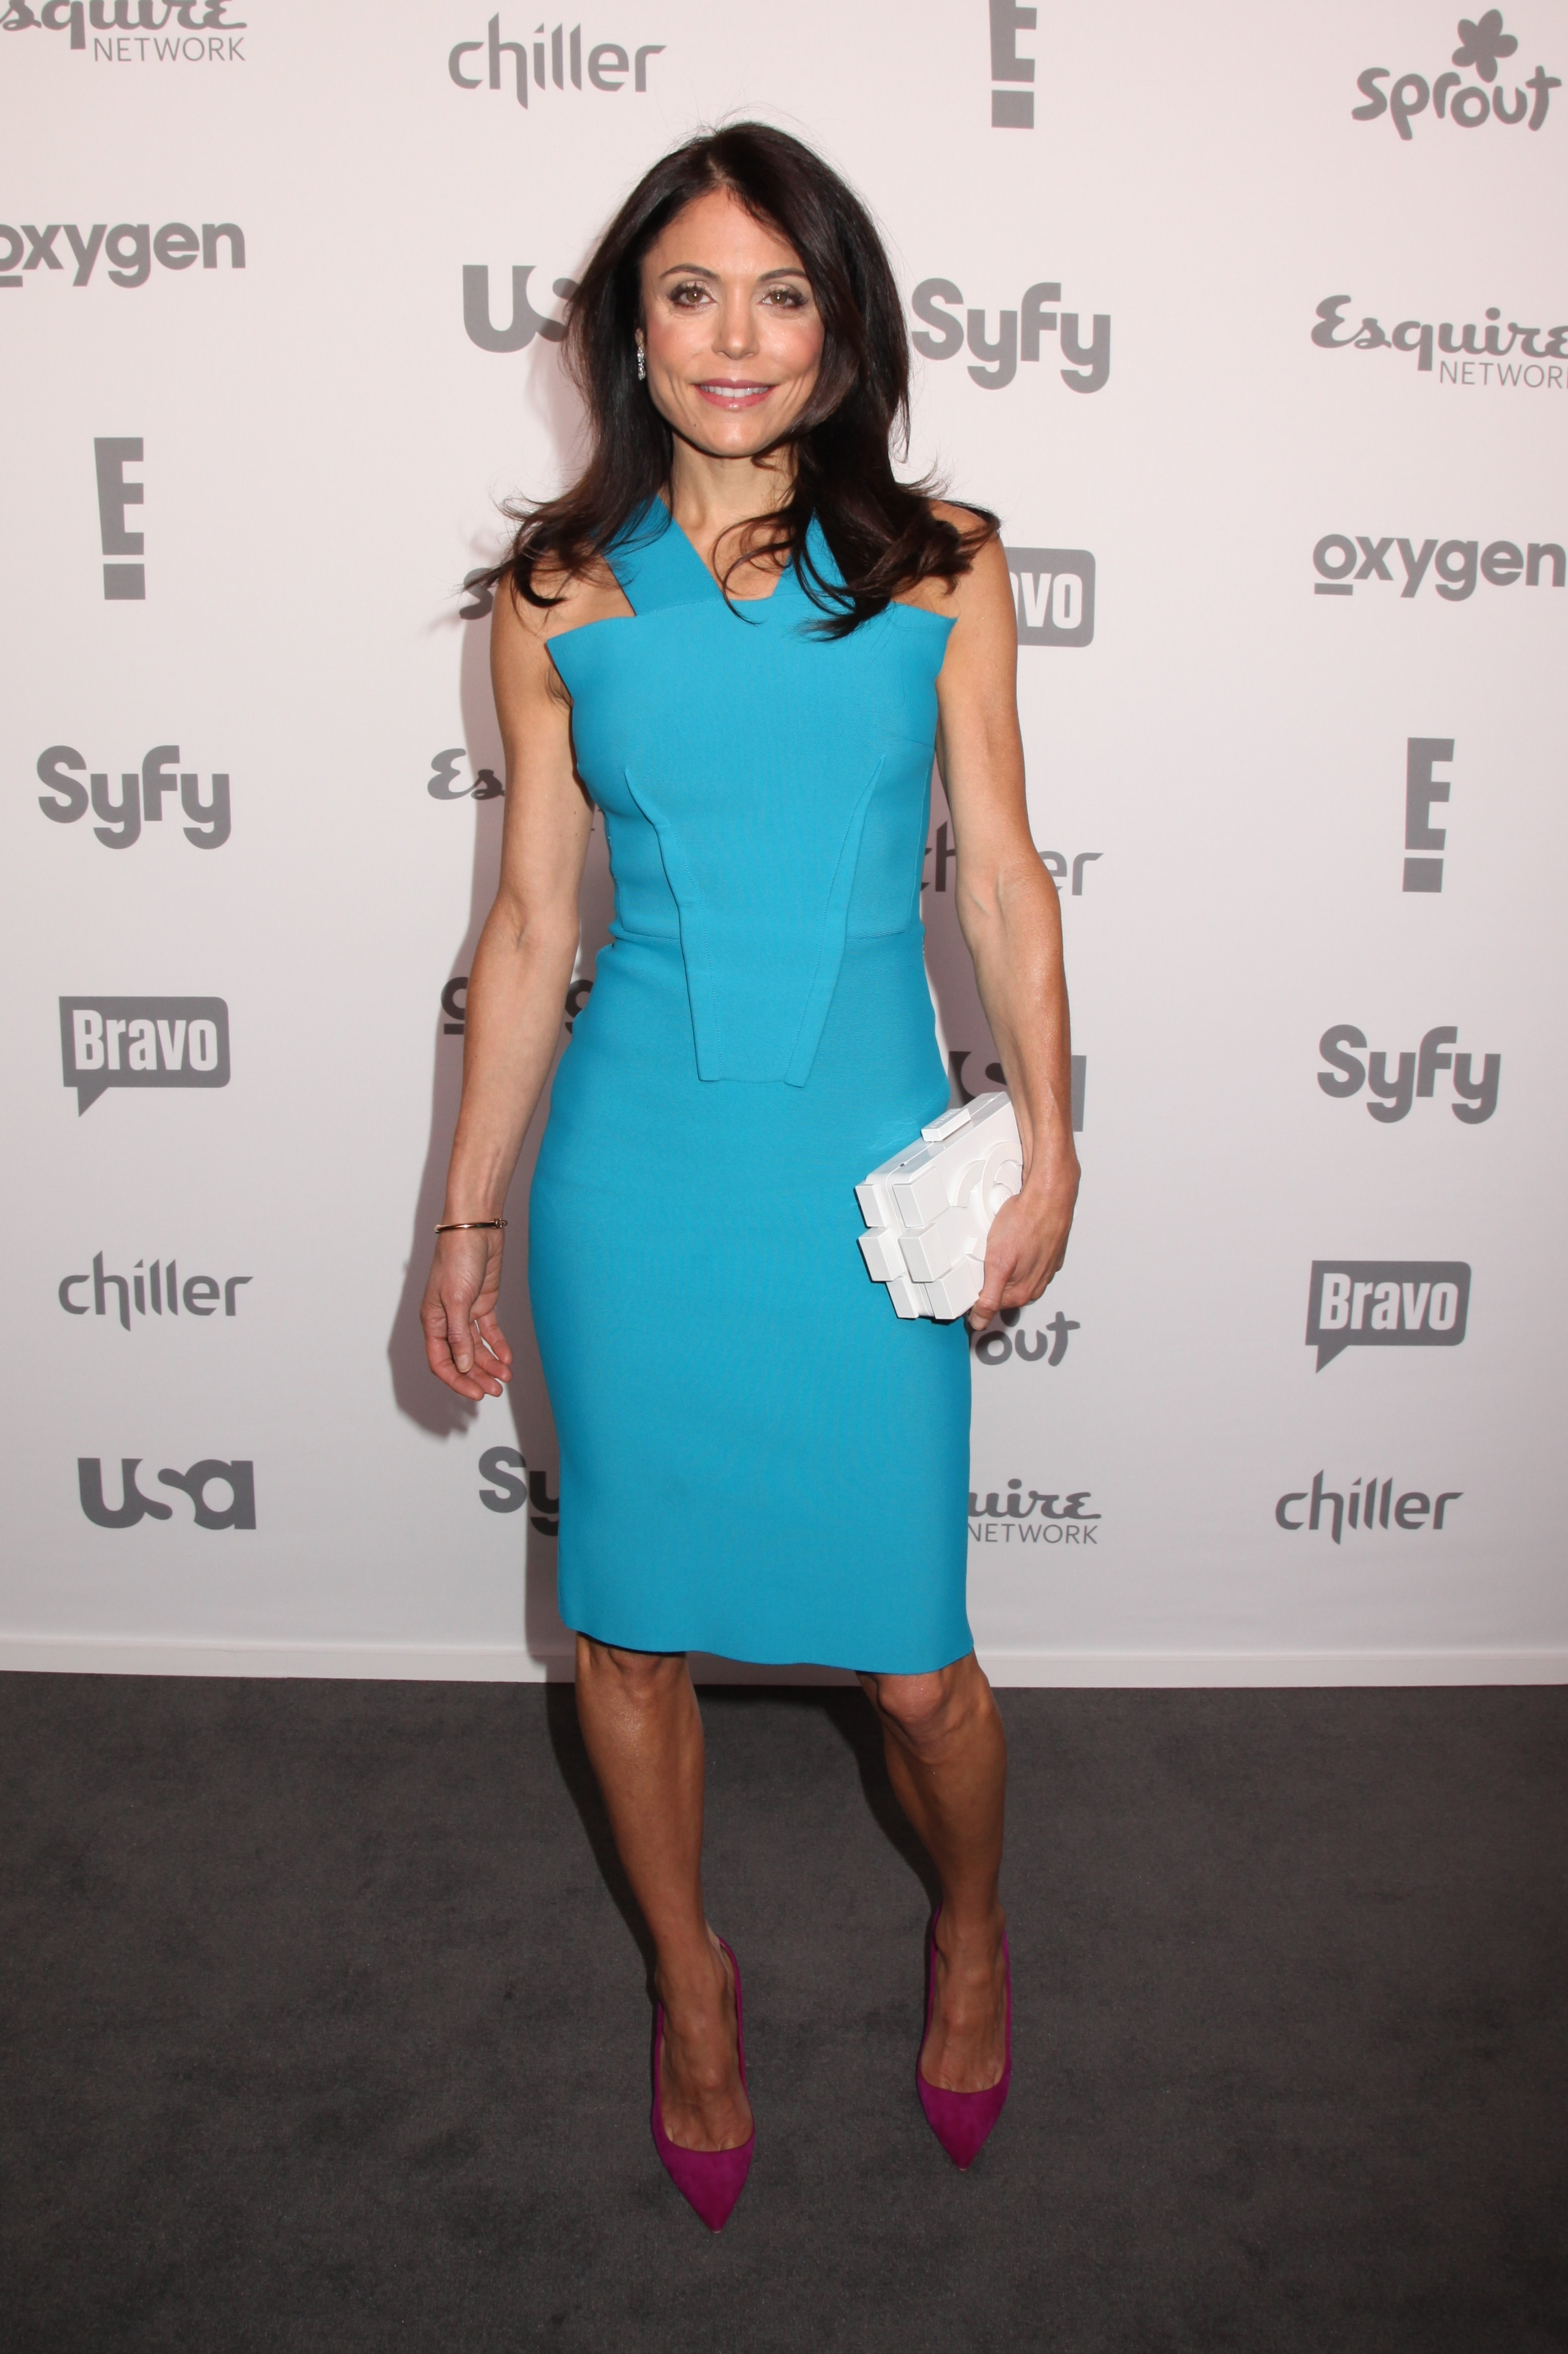 Bethenny Frankel and her new boyfriend call it quits